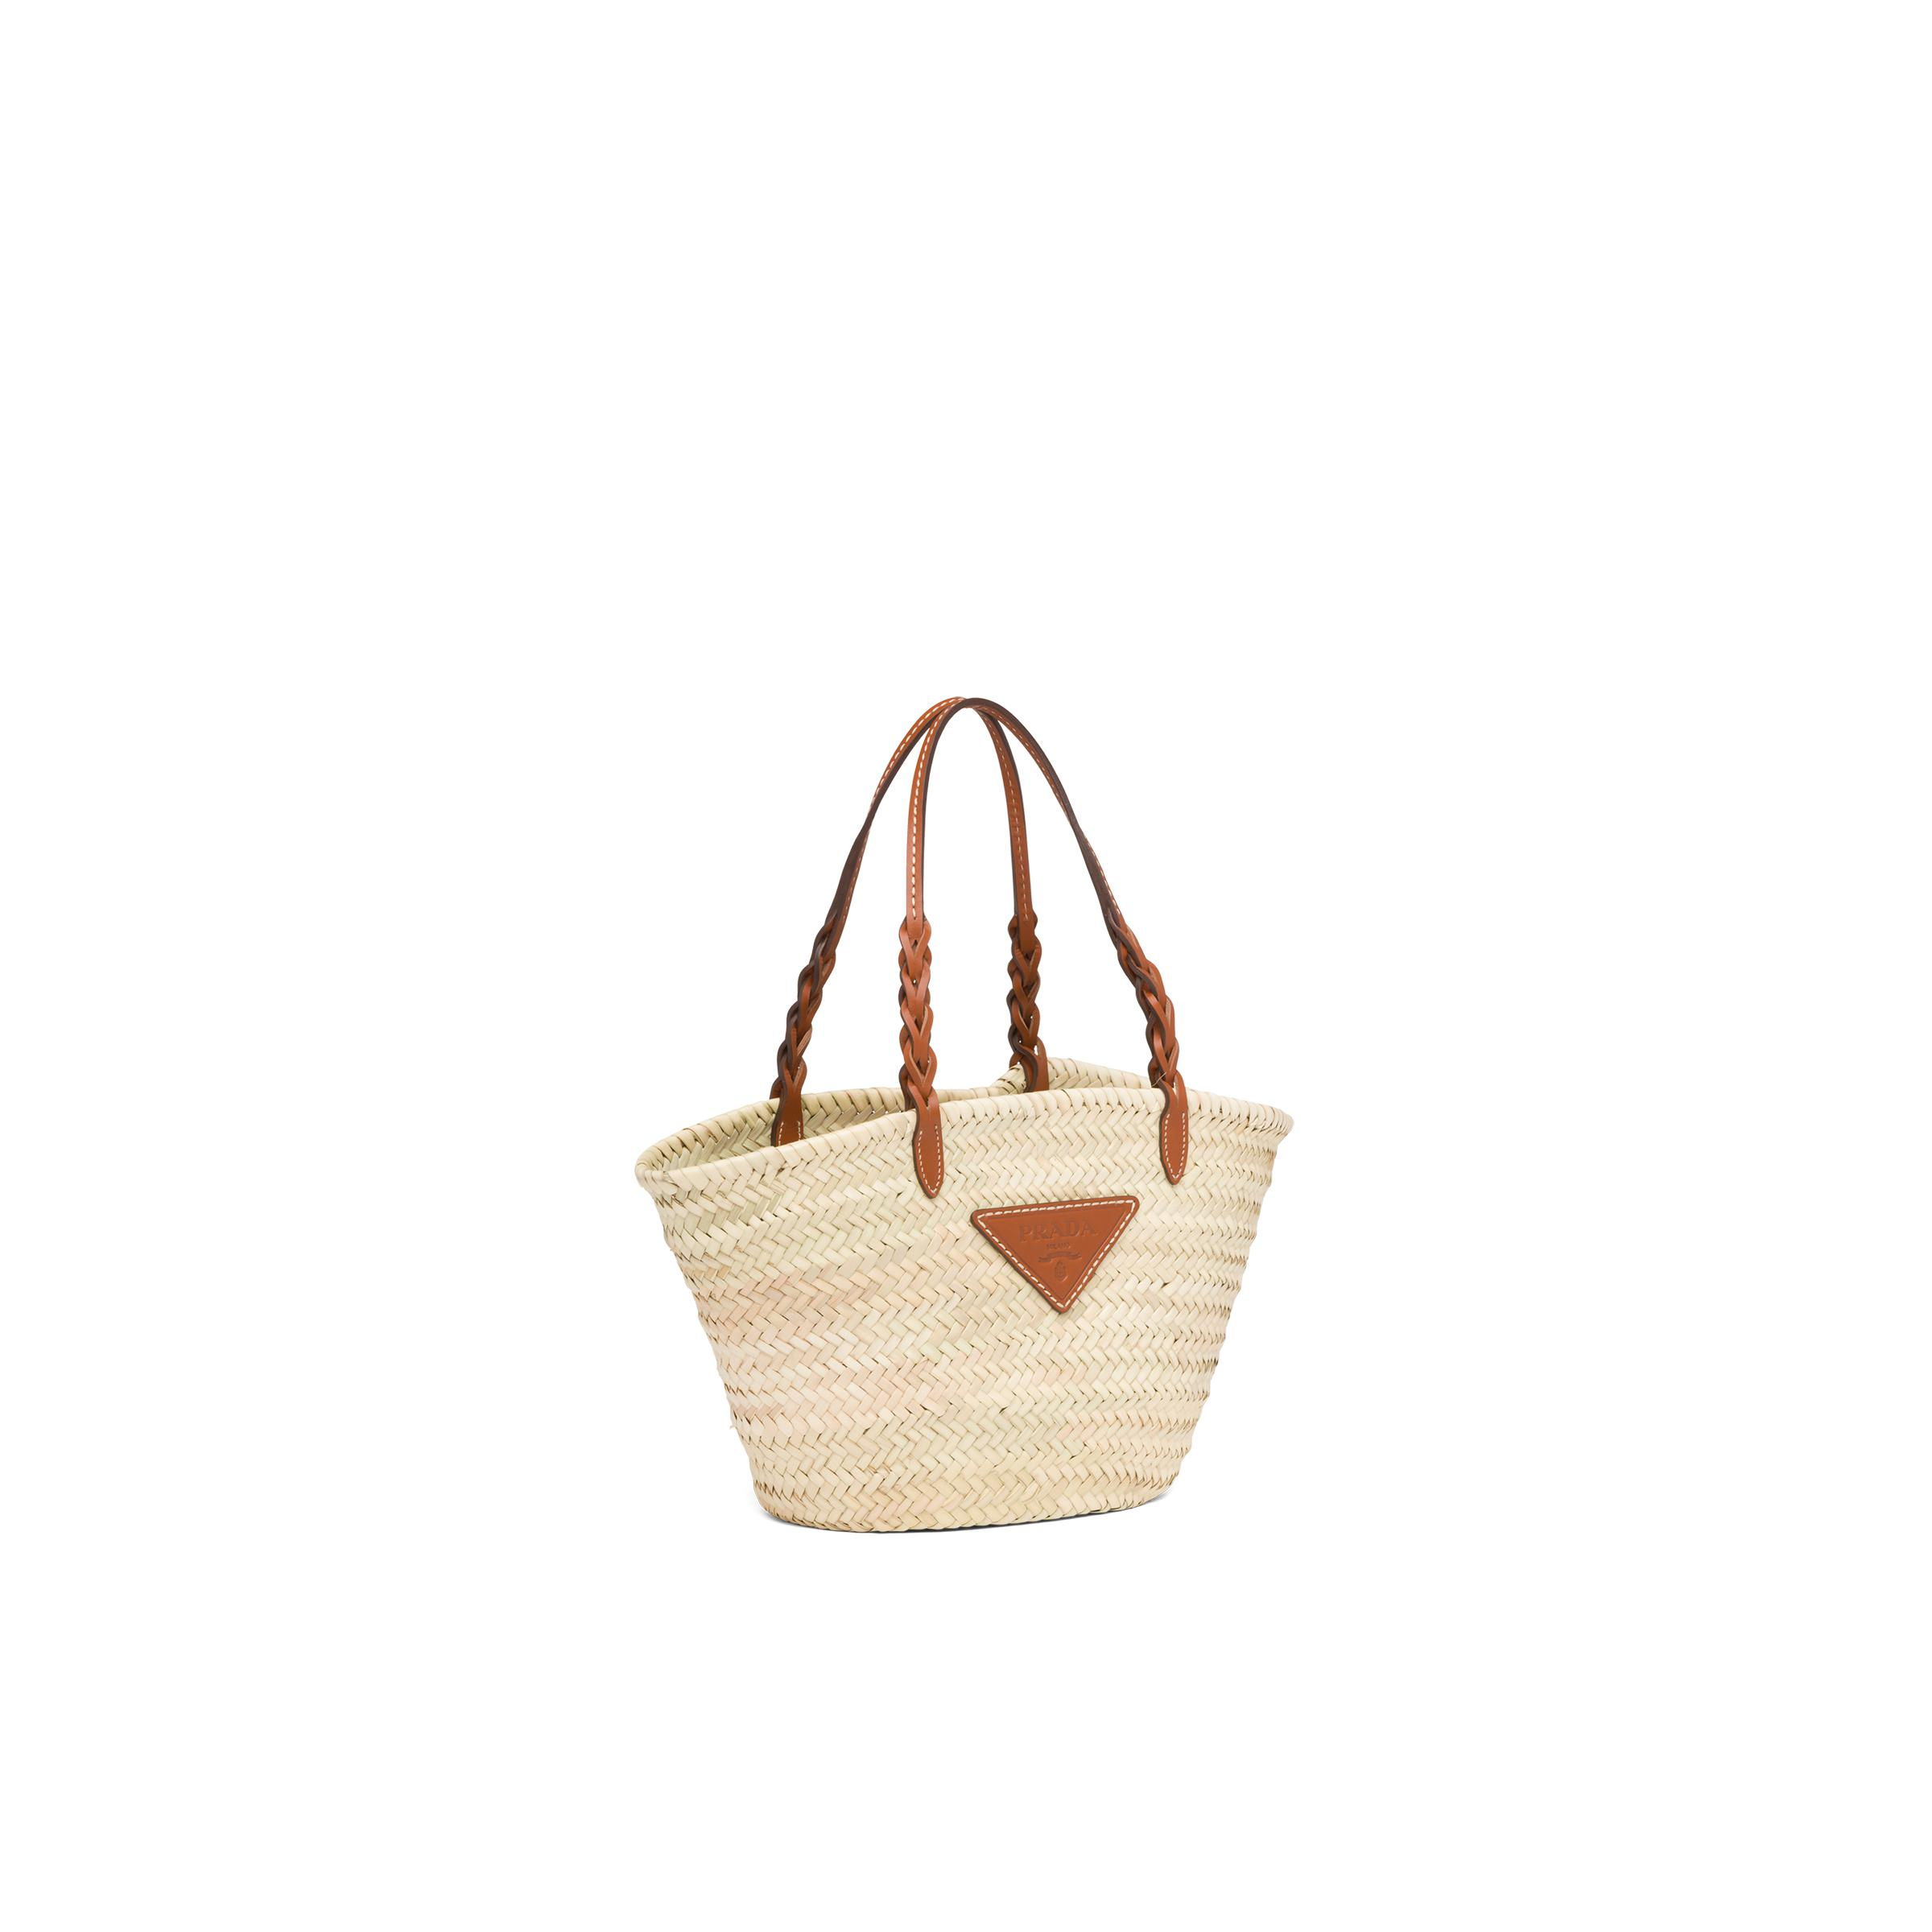 Woven Palm And Leather Tote Women Beige/cognac 2